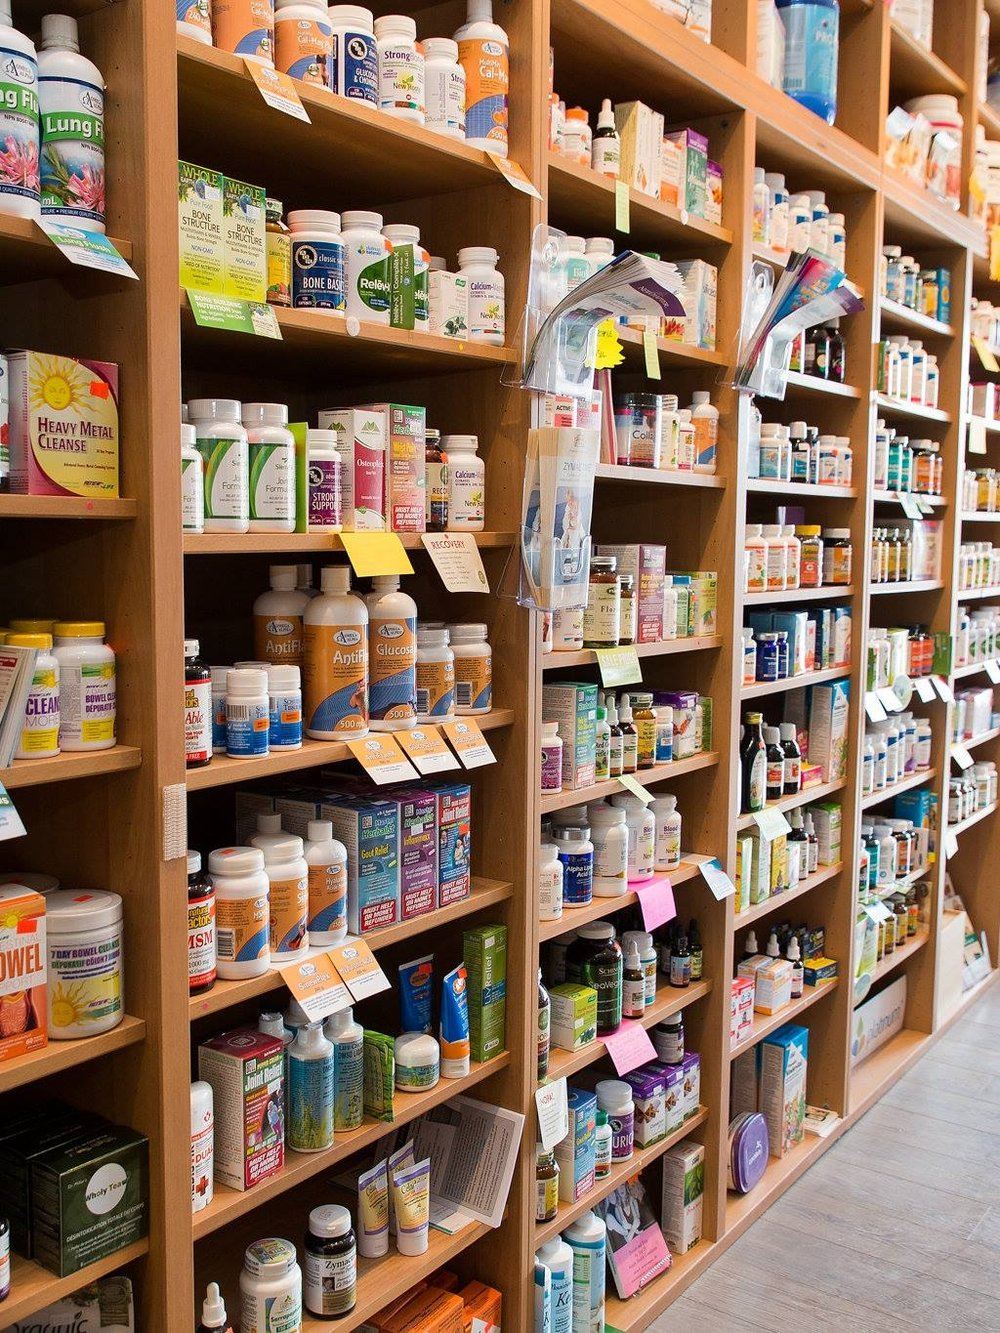 Supplements - A premium selection of brand name supplements